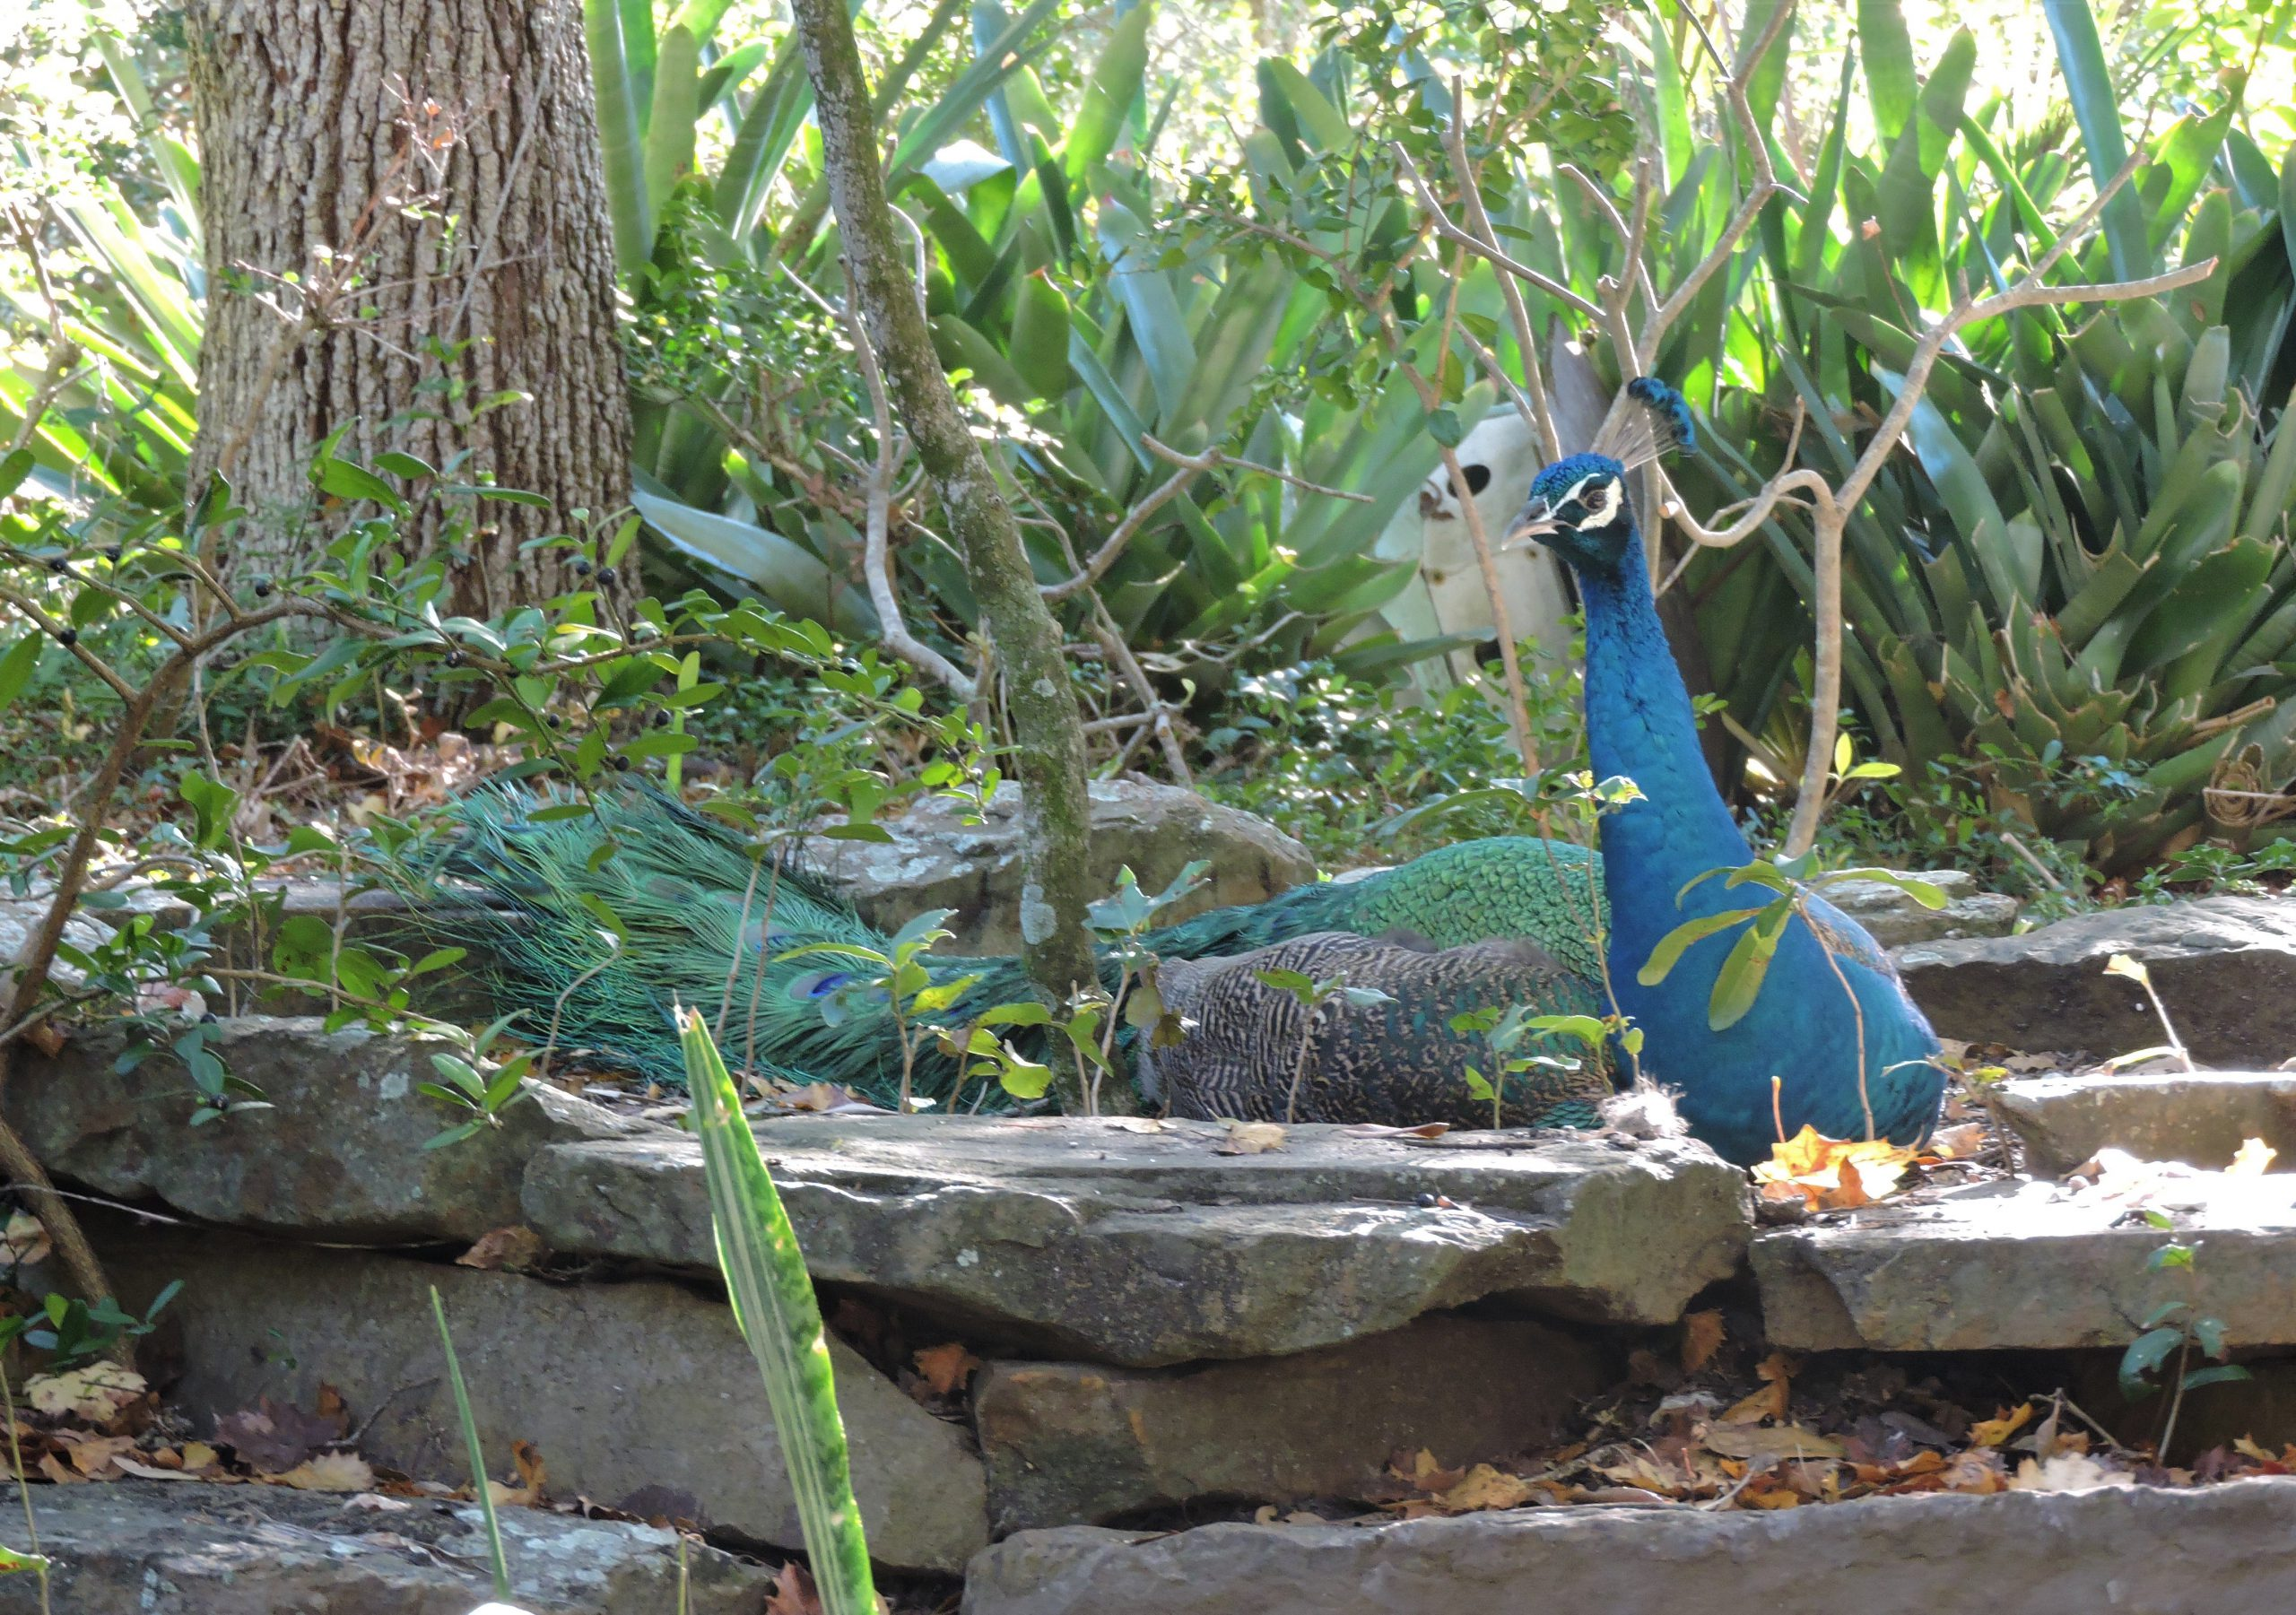 Peacock at Jungle Prada Grounds